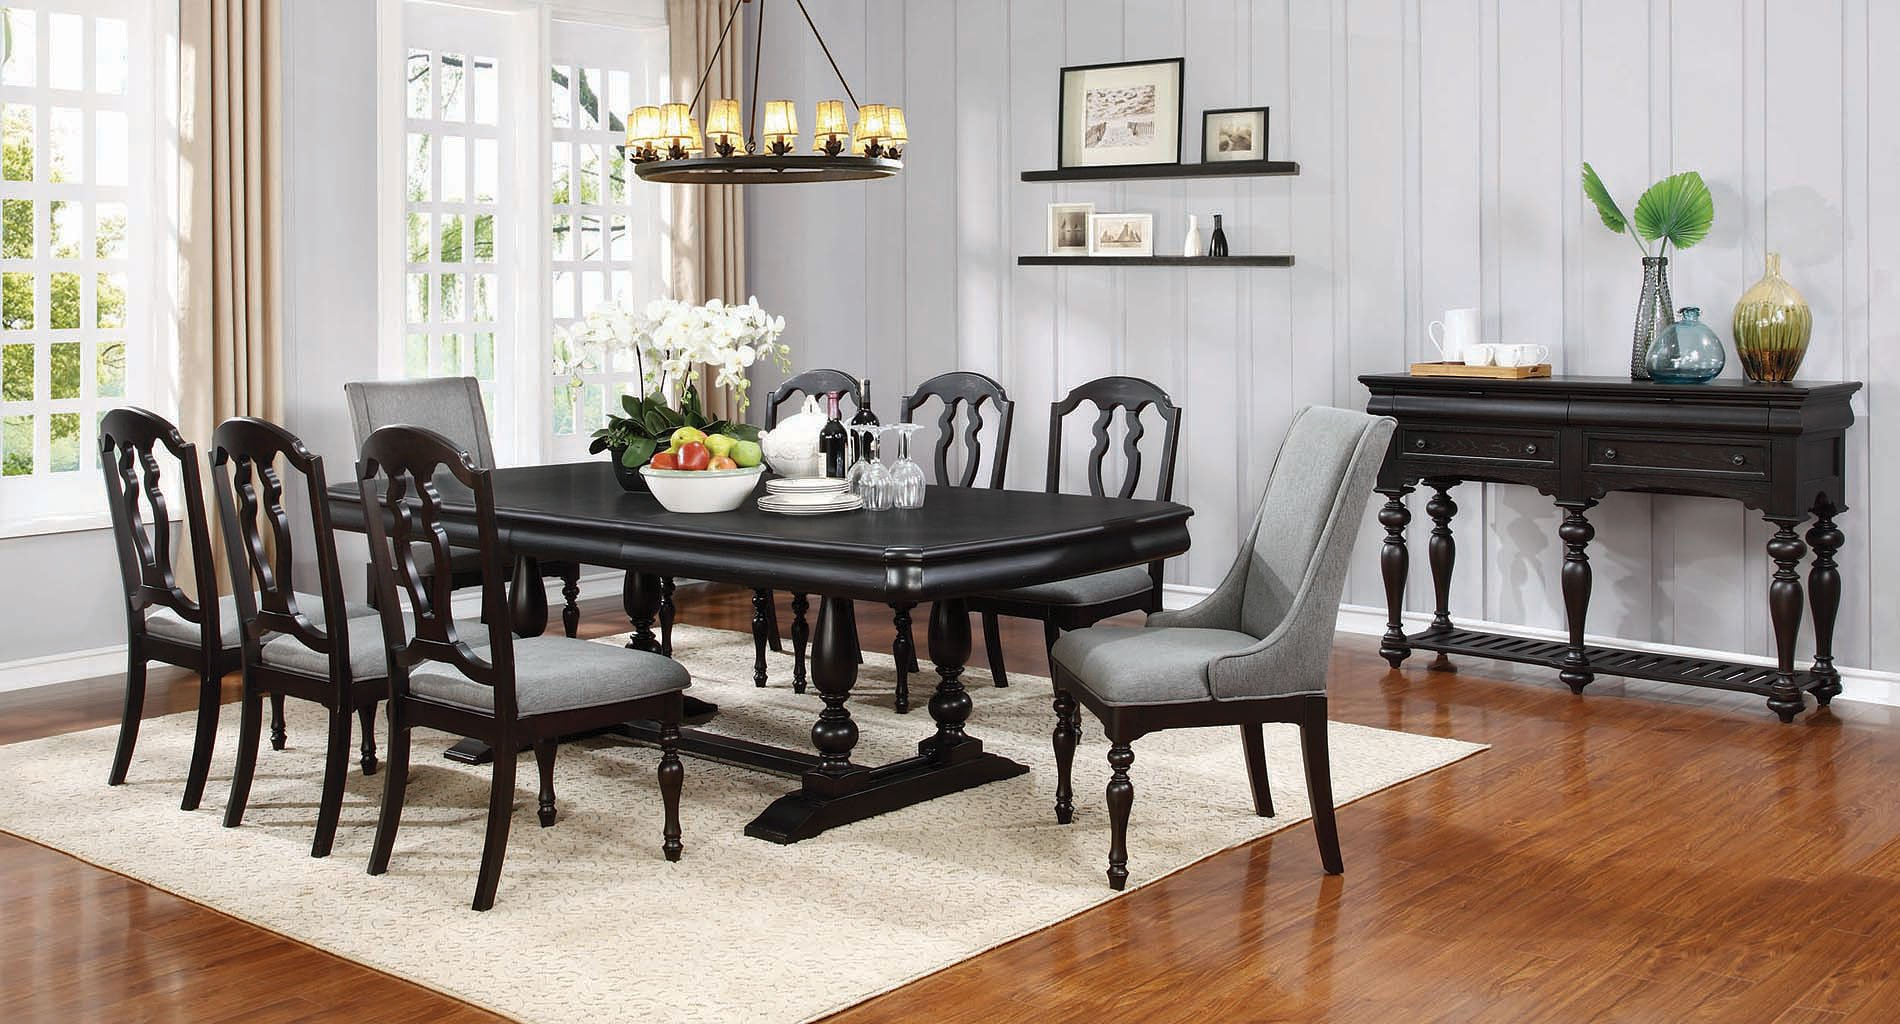 20 Hassle Free Zen Dining Room Decorating Ideas: Dining Room And Kitchen Furniture